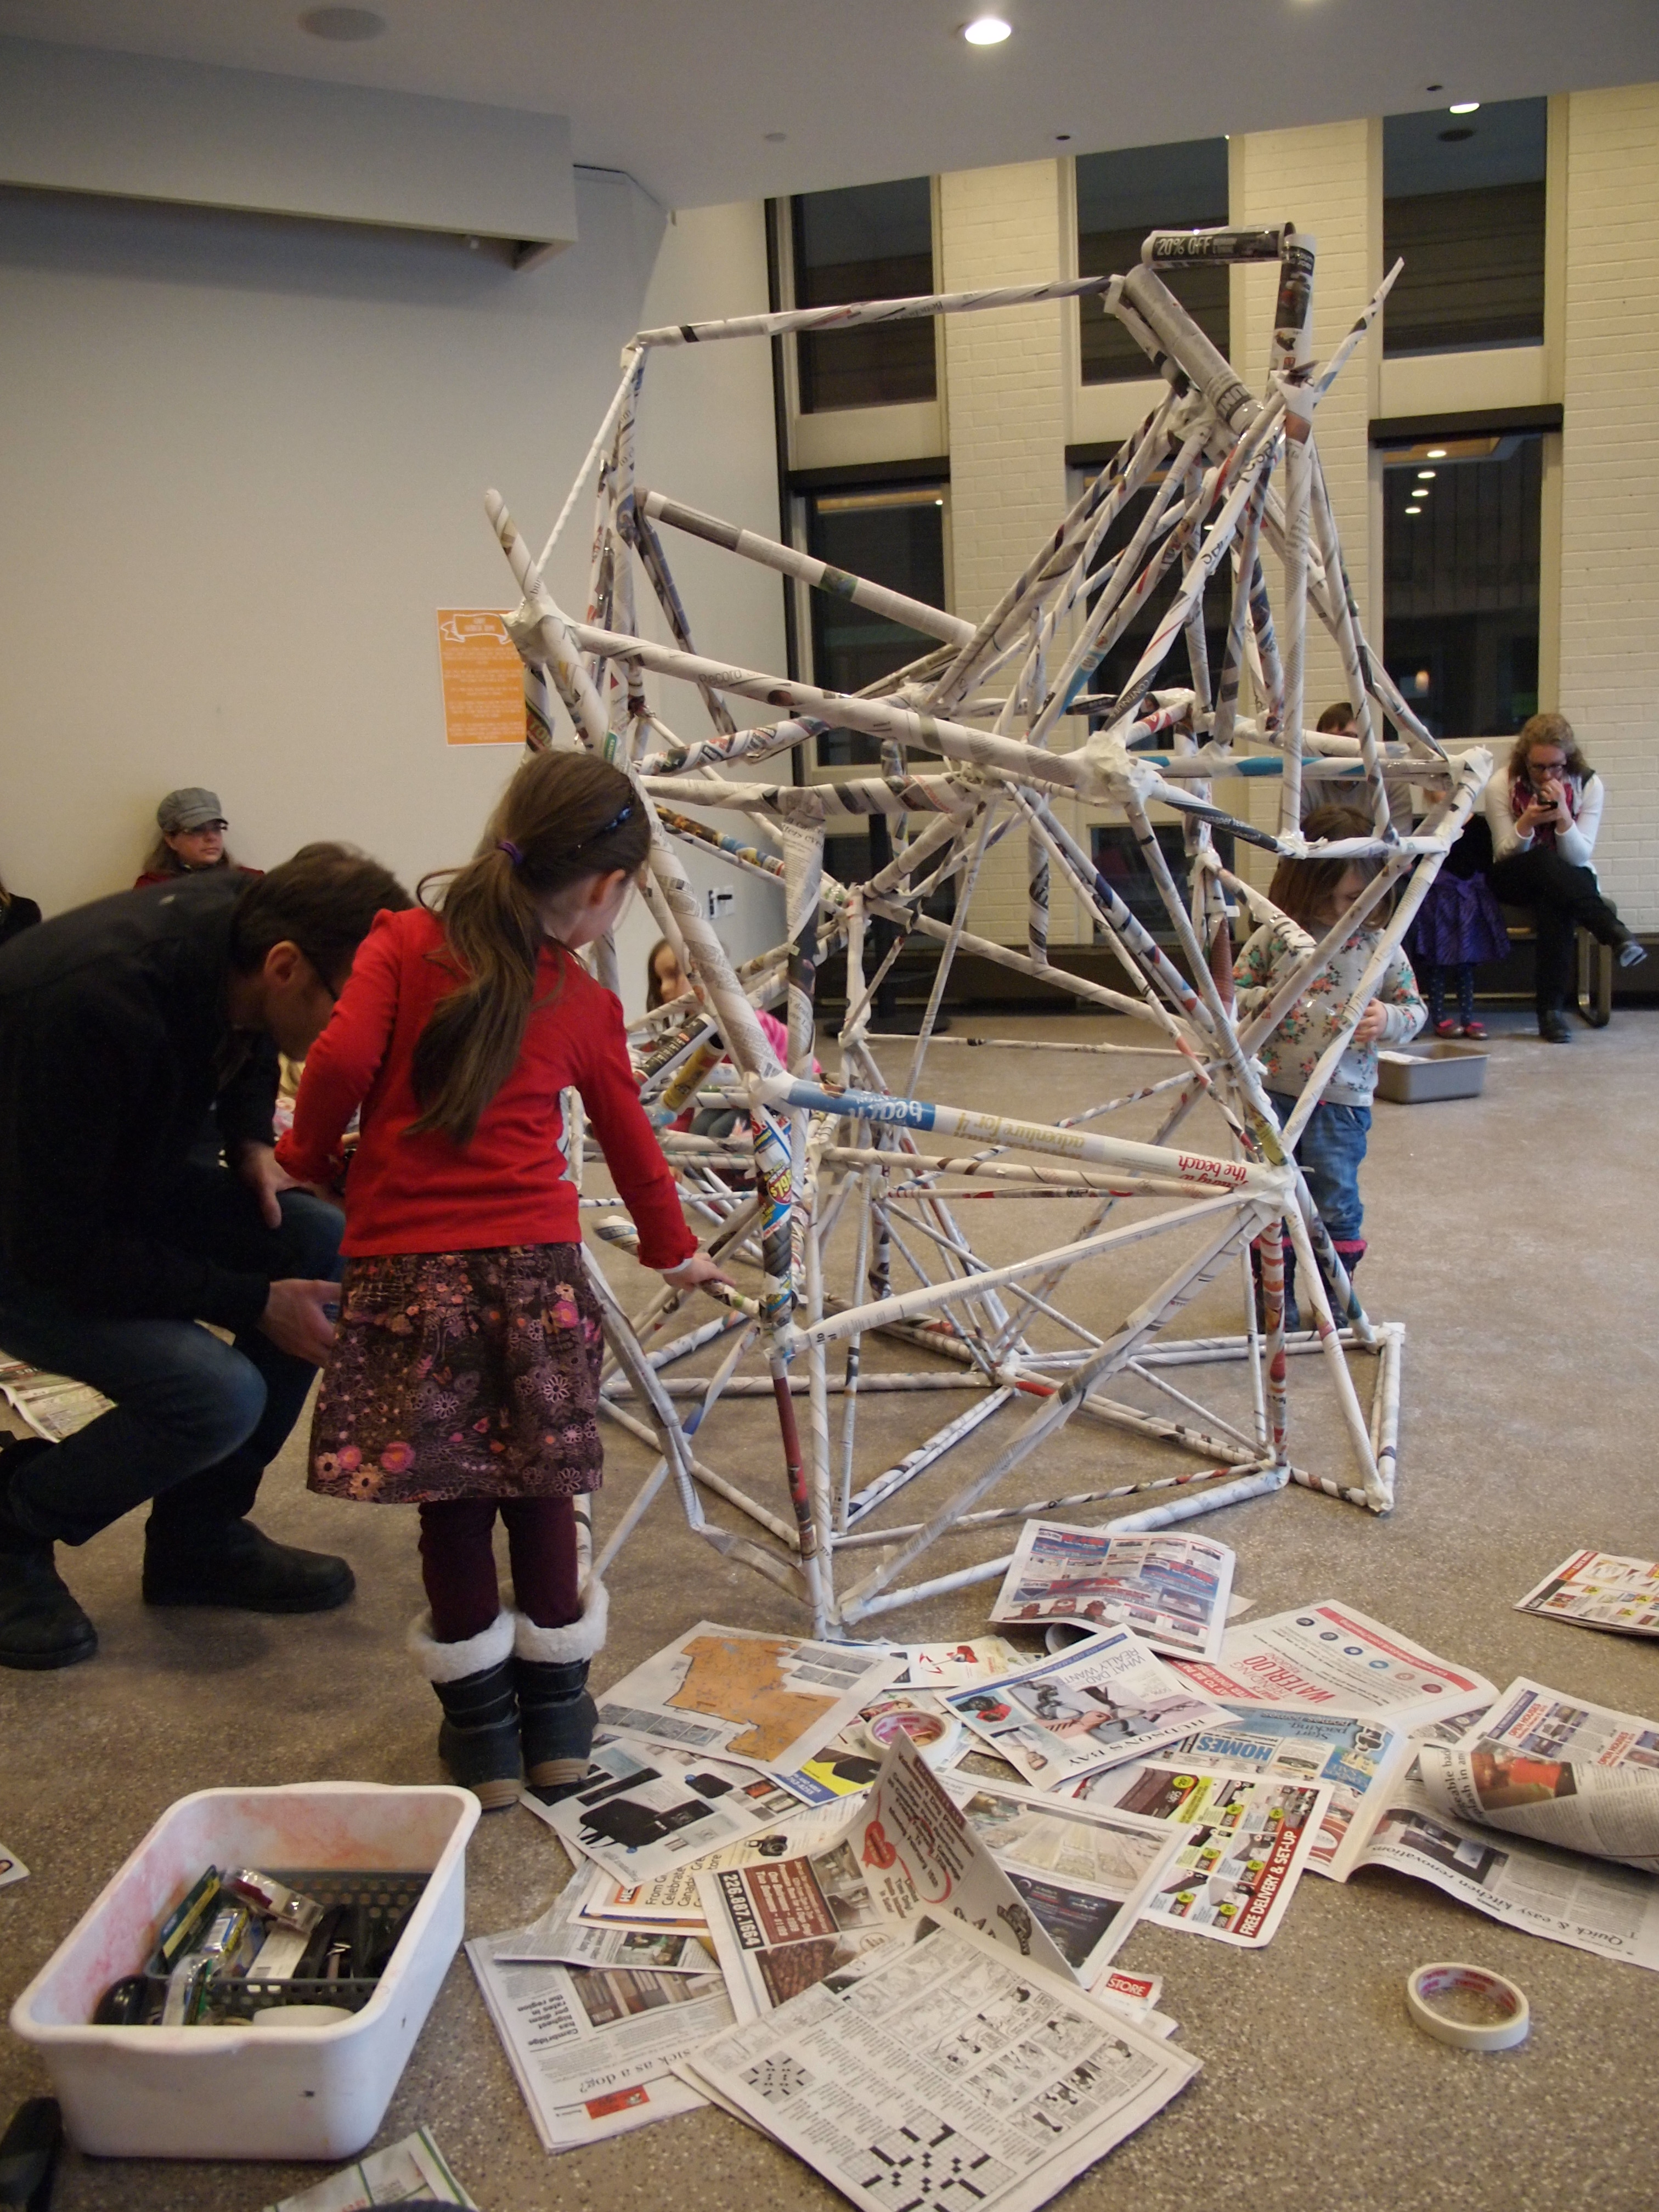 A child works on creating a large papier mache sculpture that fills the centre of the activity space.